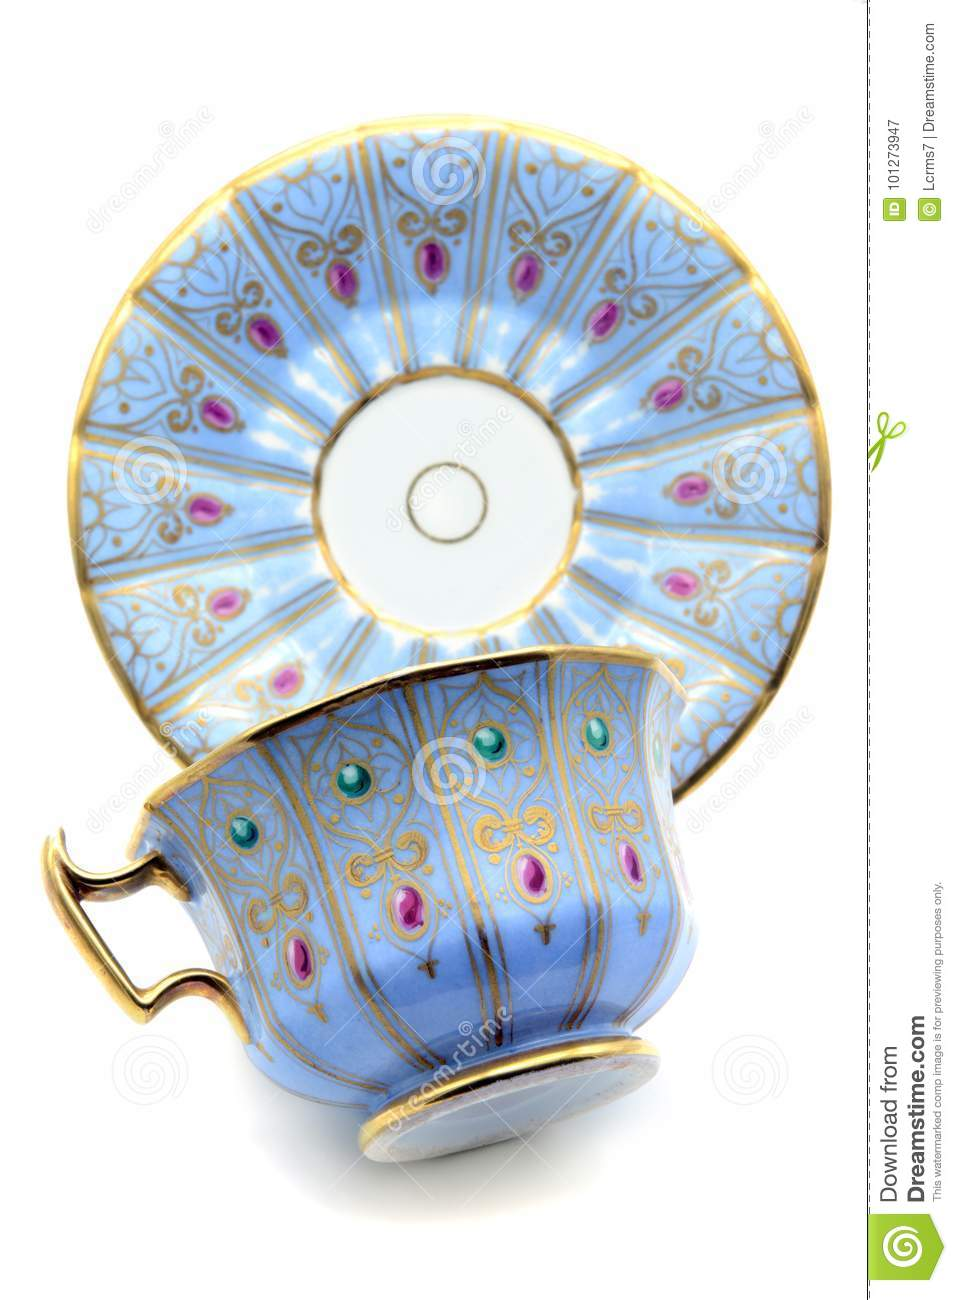 Antique biedermeier time coffee cup on white isolated background